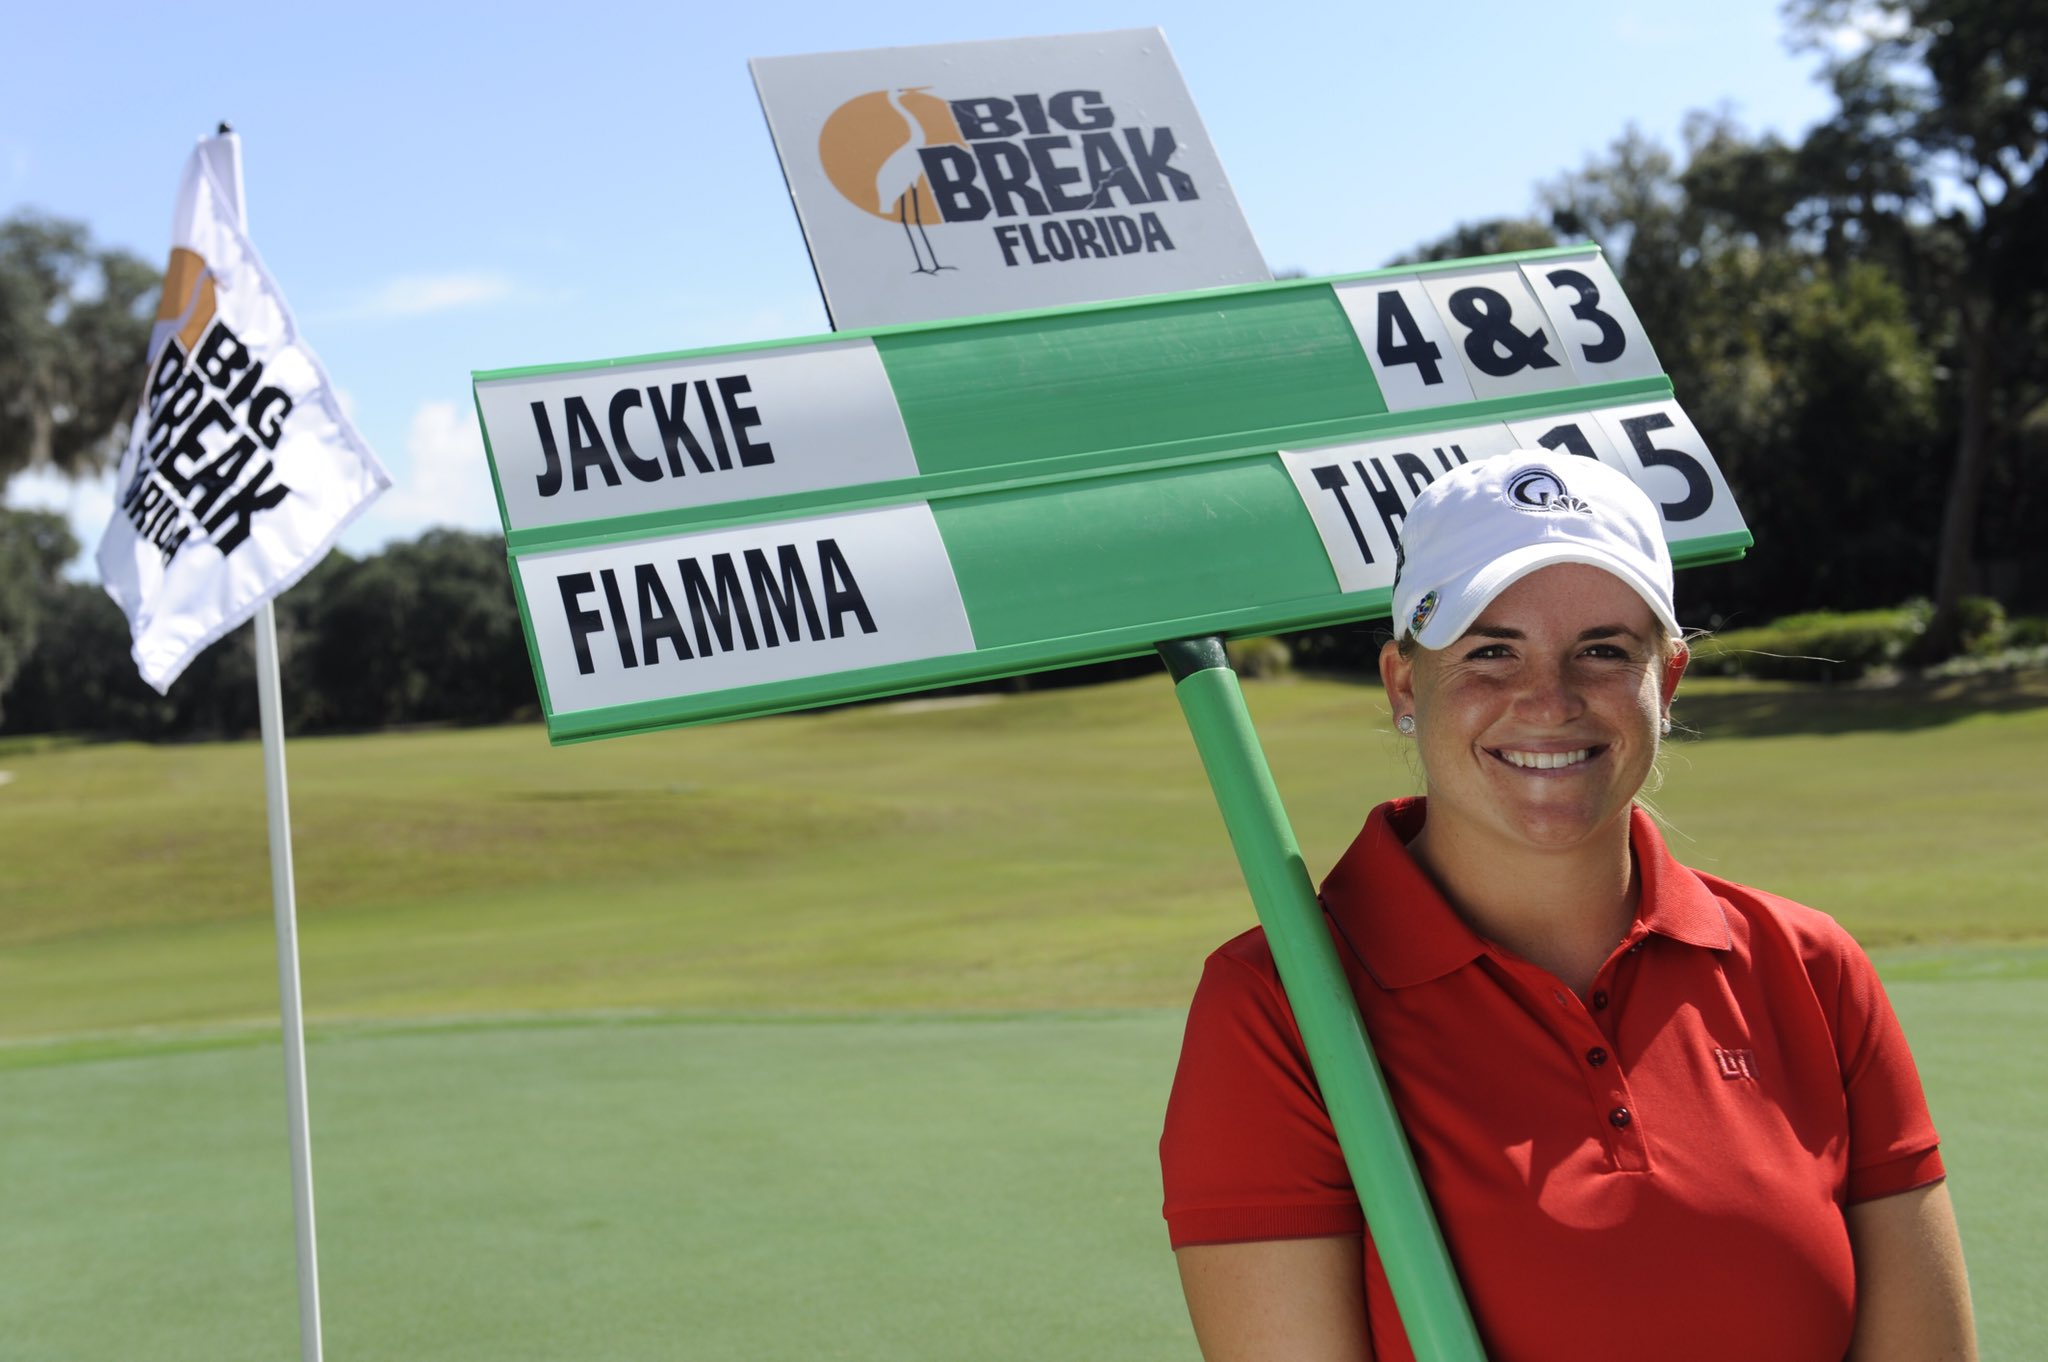 A #BigBreak contestant has never won an @LPGA event; @JackieSGolf who won #BigBreakFlorida begins 3rd rd of @LPGAKiaClassic 3 back of Kerr https://t.co/P45Byhl2Ho